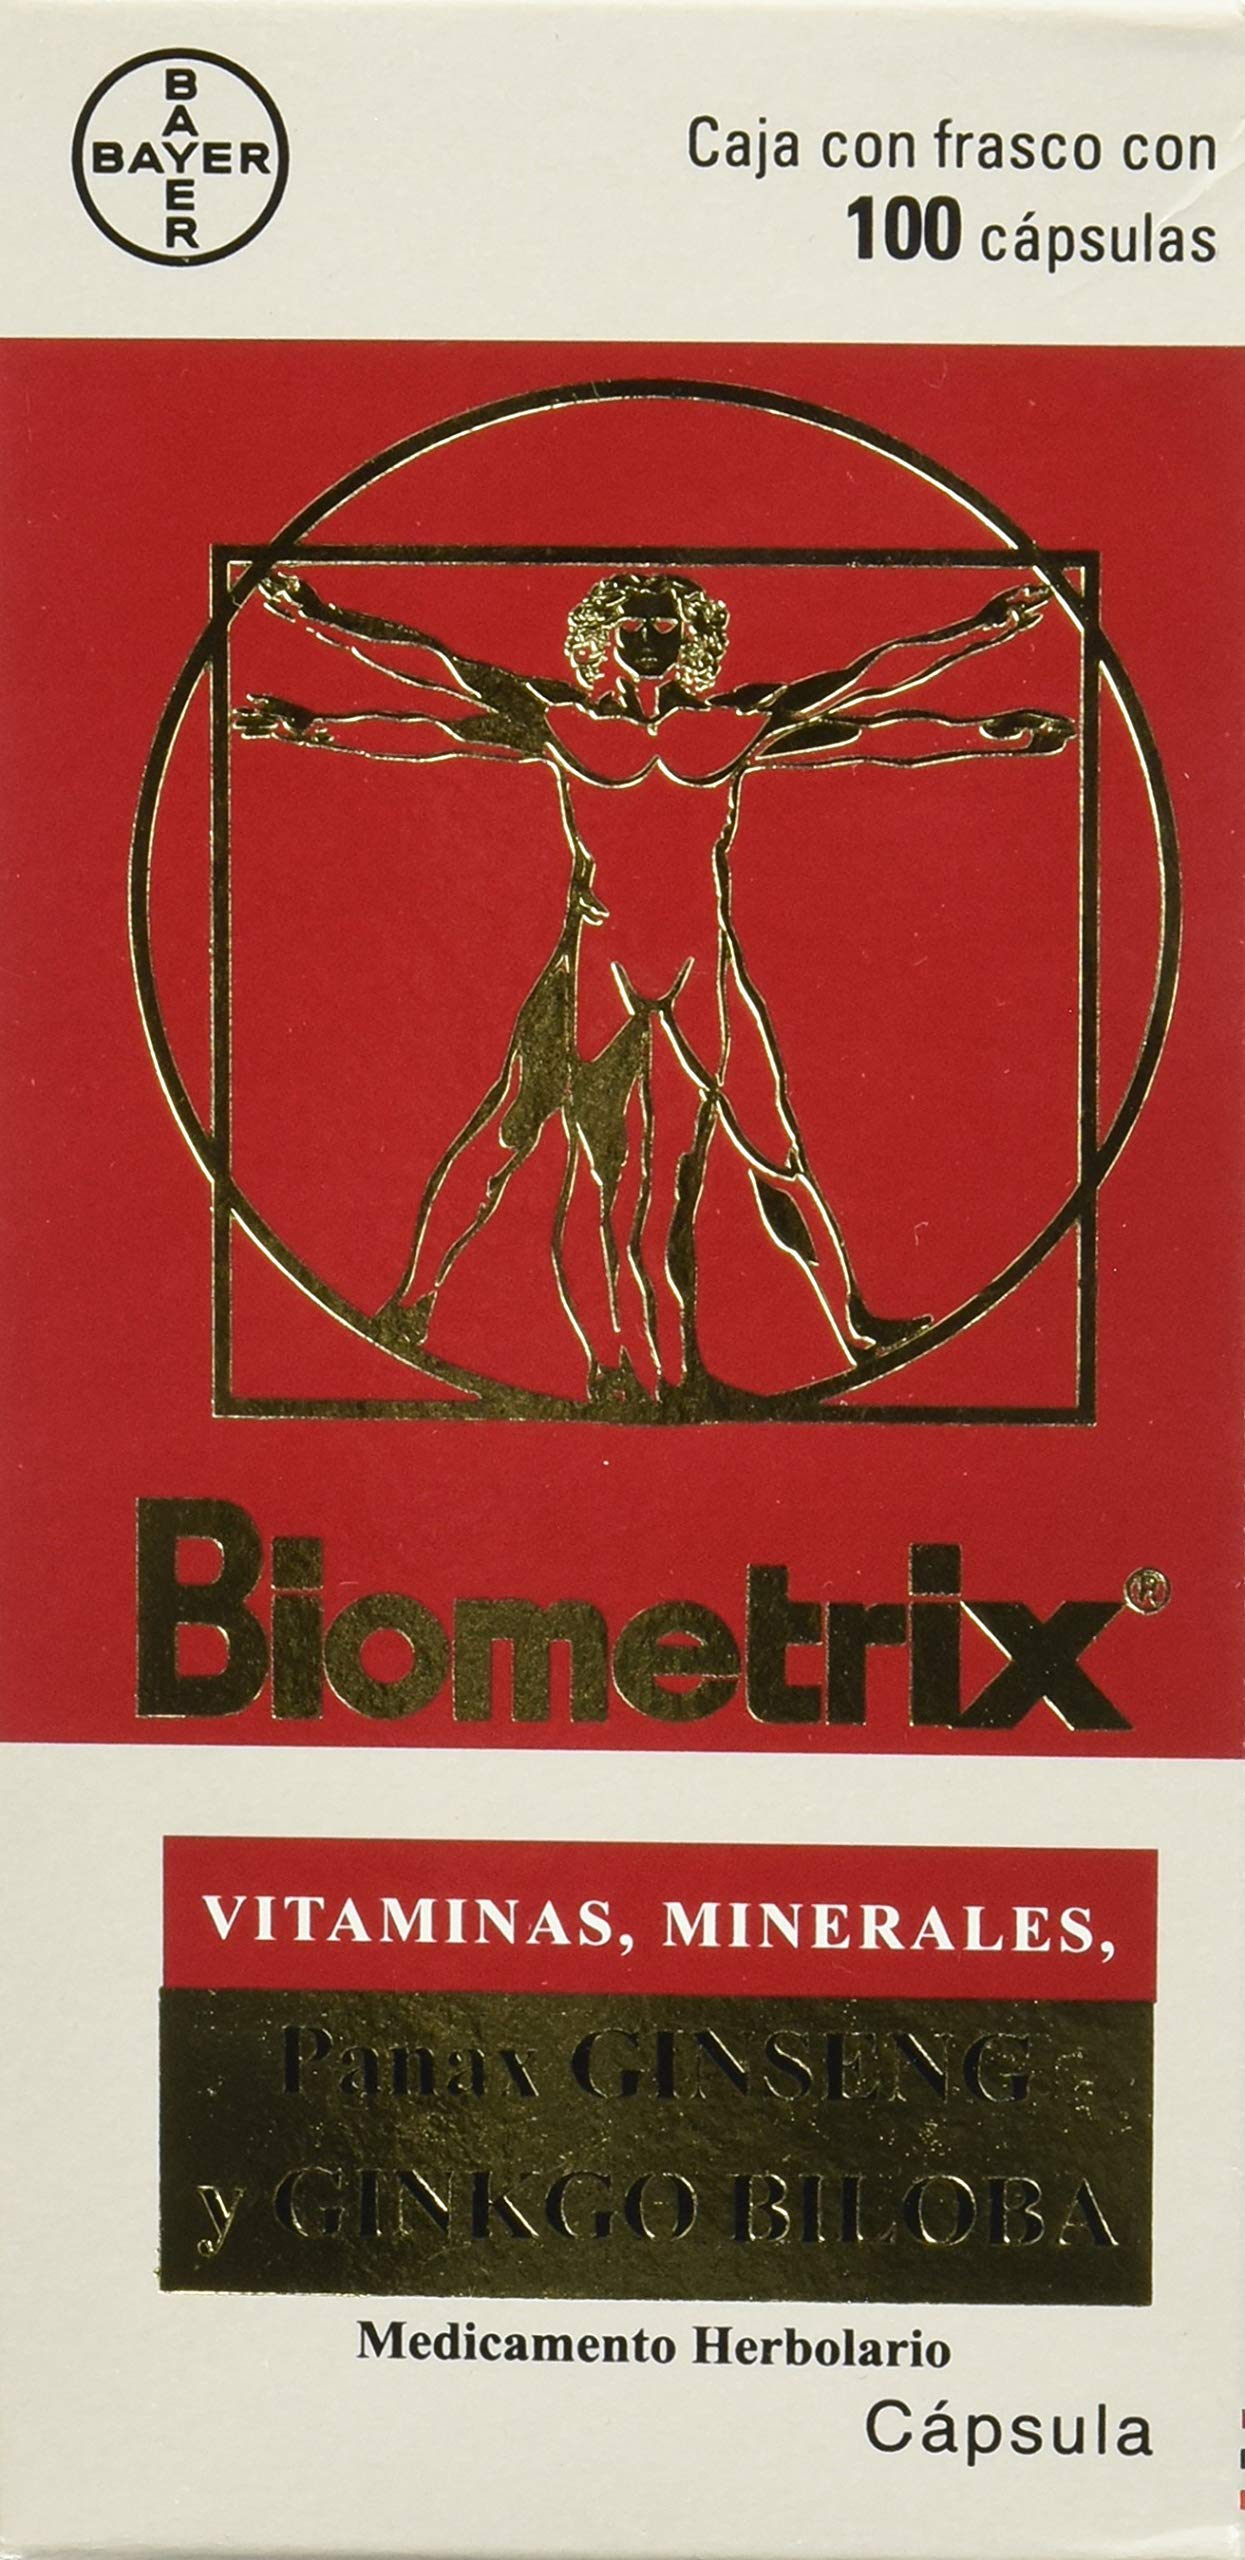 Amazon.com: Biometrix for the Prevention of Stress Conditions Due to an Inadequate Supply of Vitamins and Minerals.: Health & Personal Care